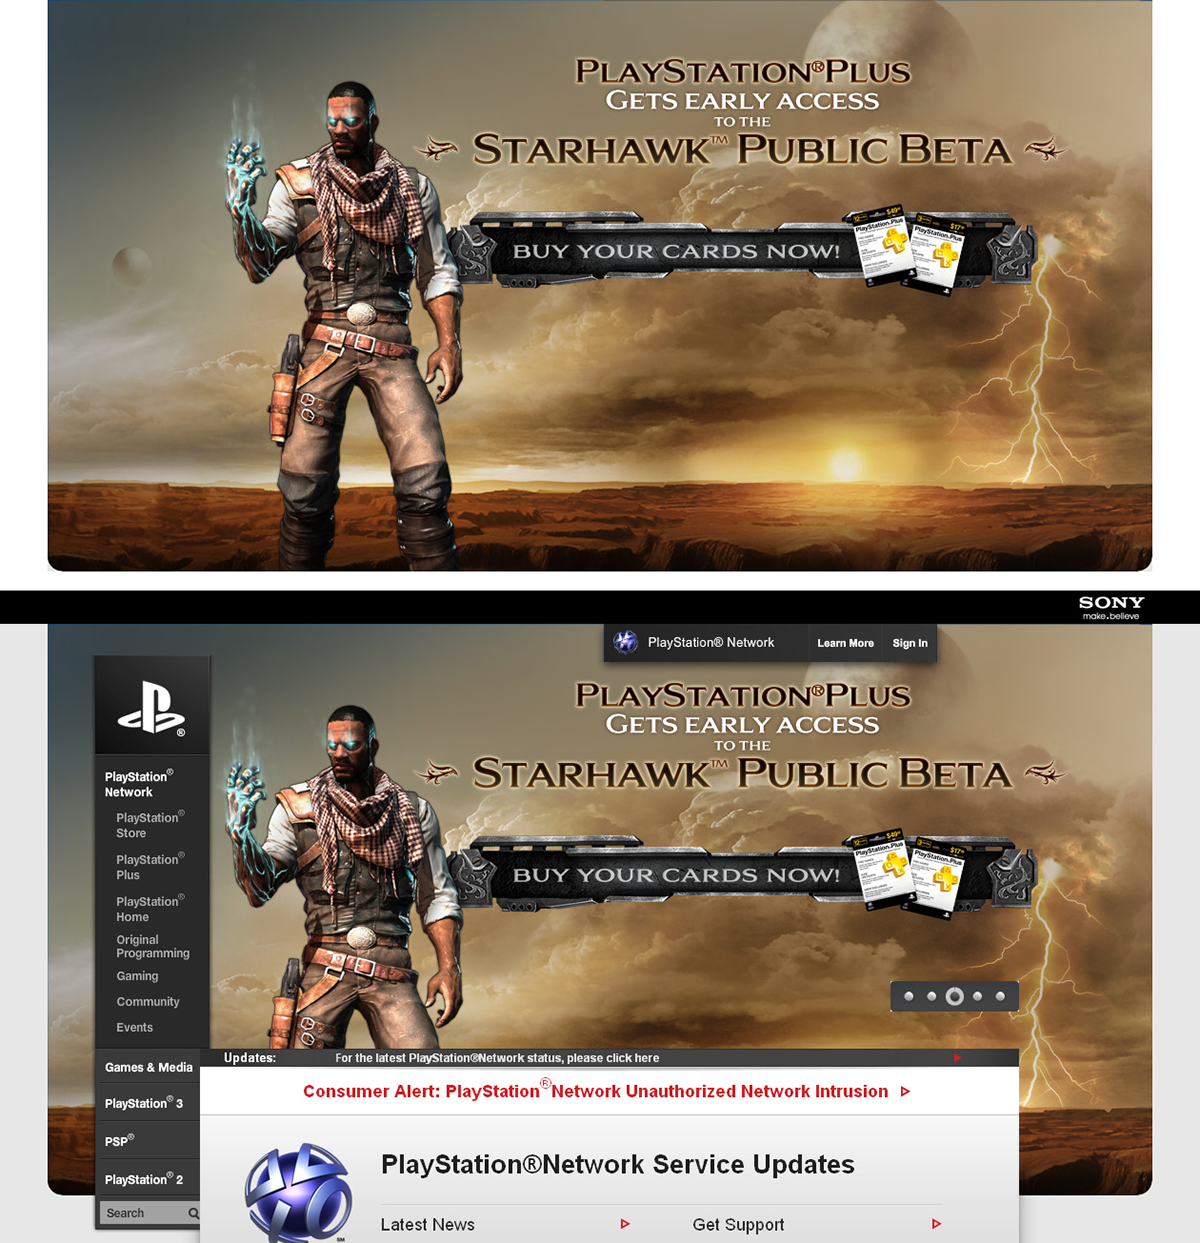 Online Banners - Sony PlayStation on Behance